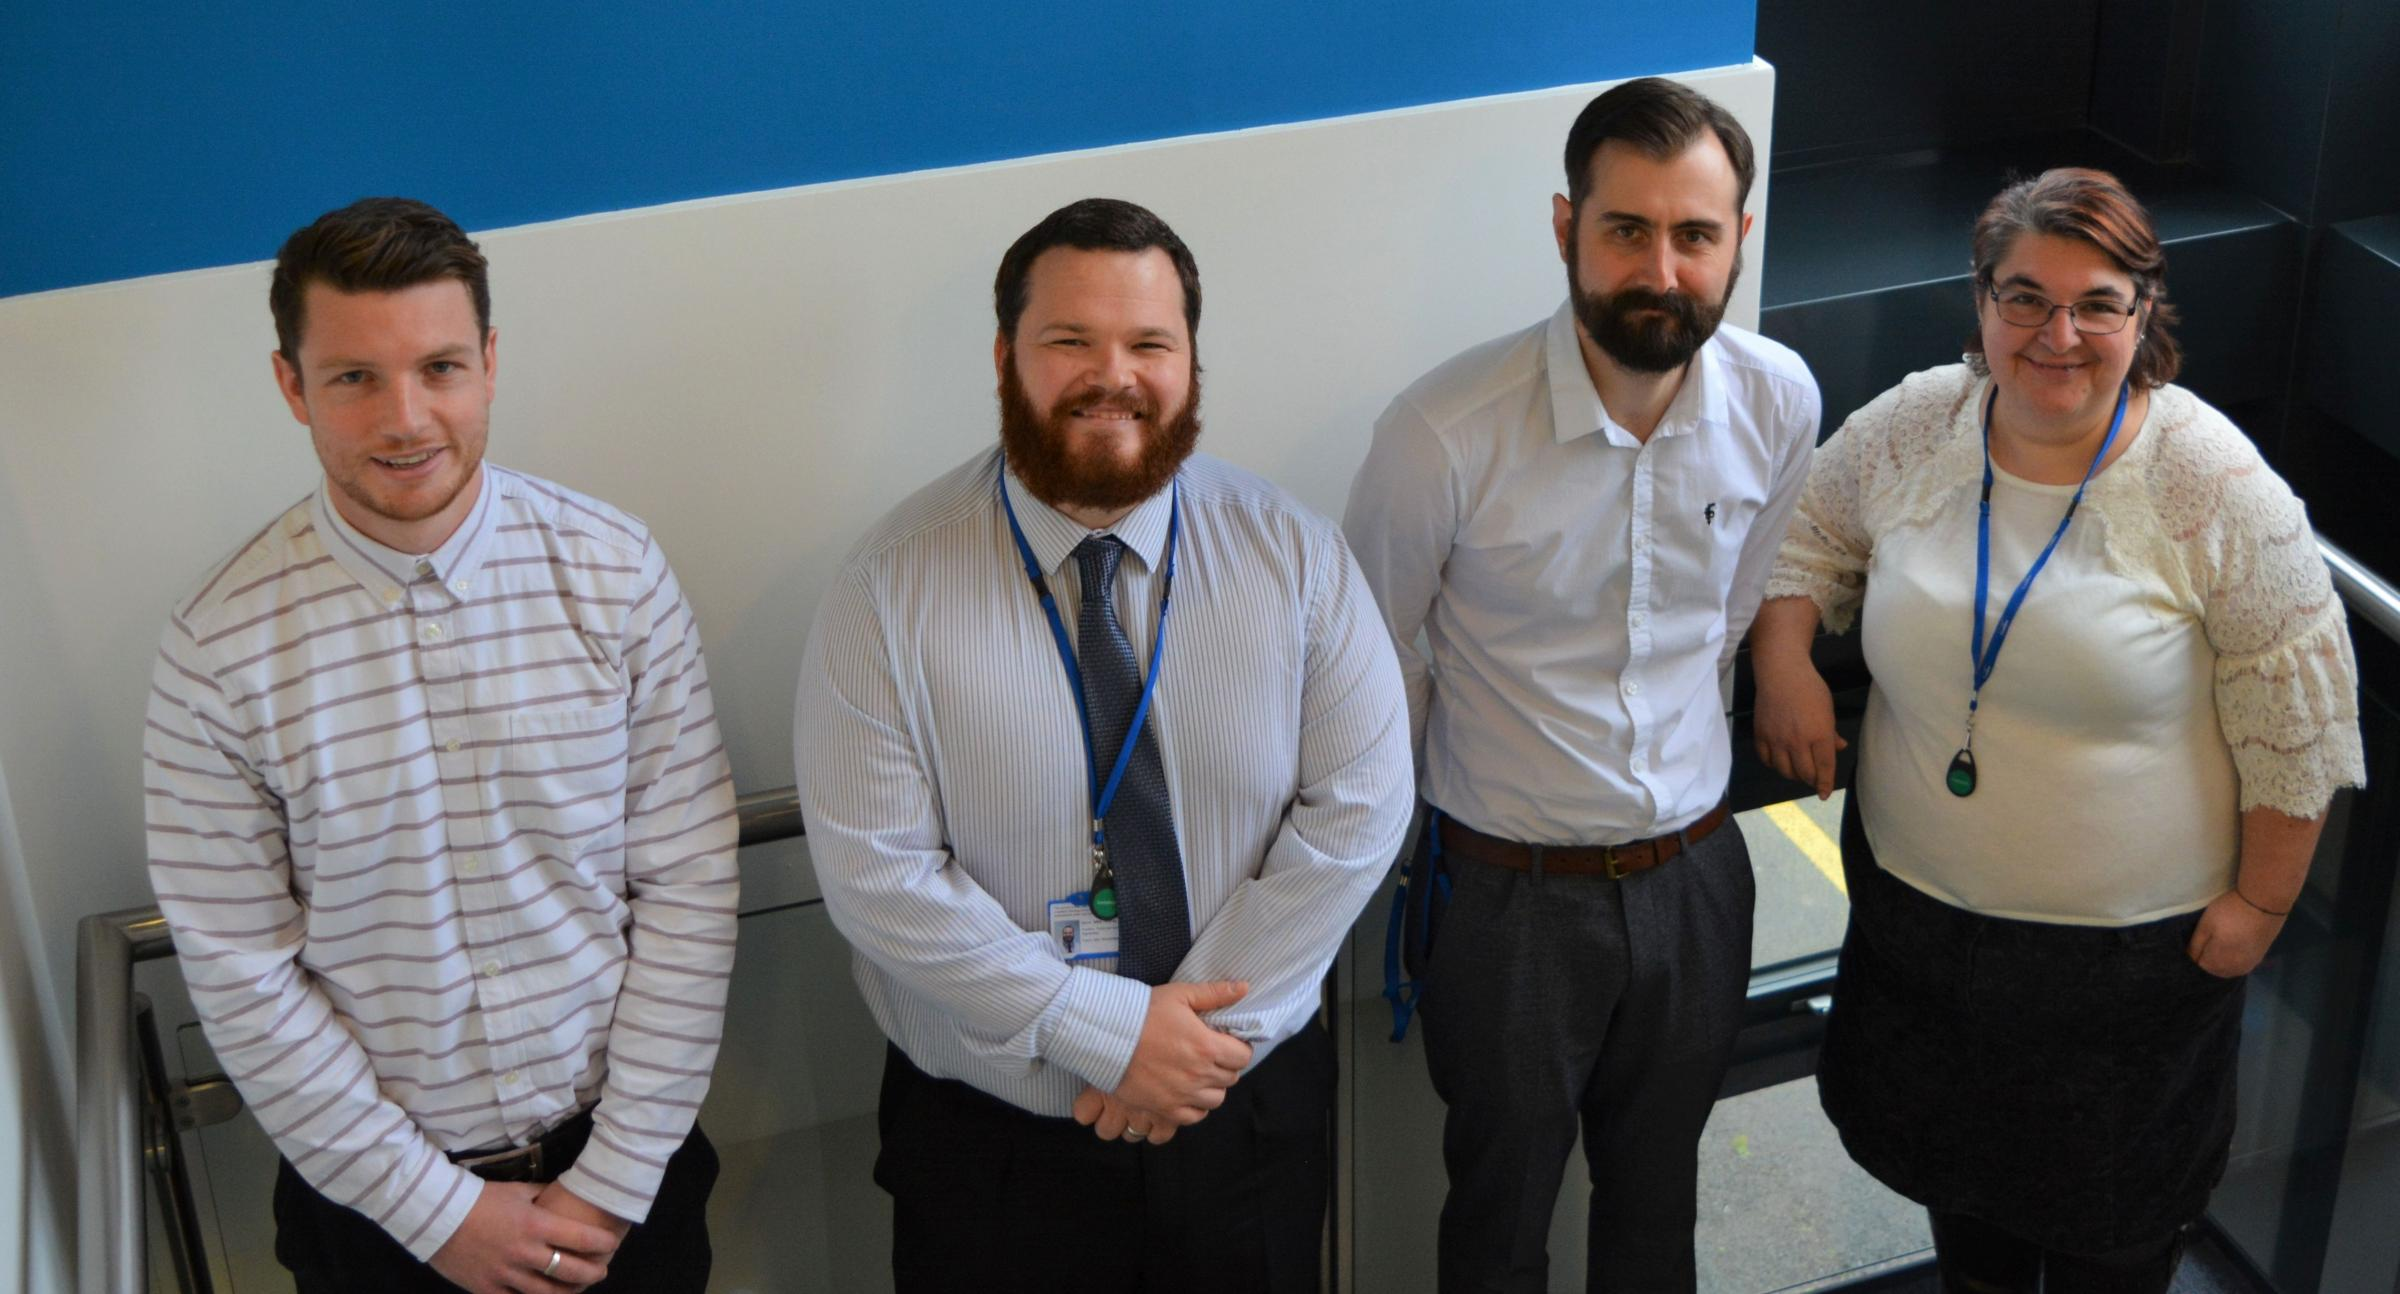 The four newest Coastline apprentices. From left to right: Fraser Short, Michael Thomas, Matthew Nellyer and Gayle Rice.